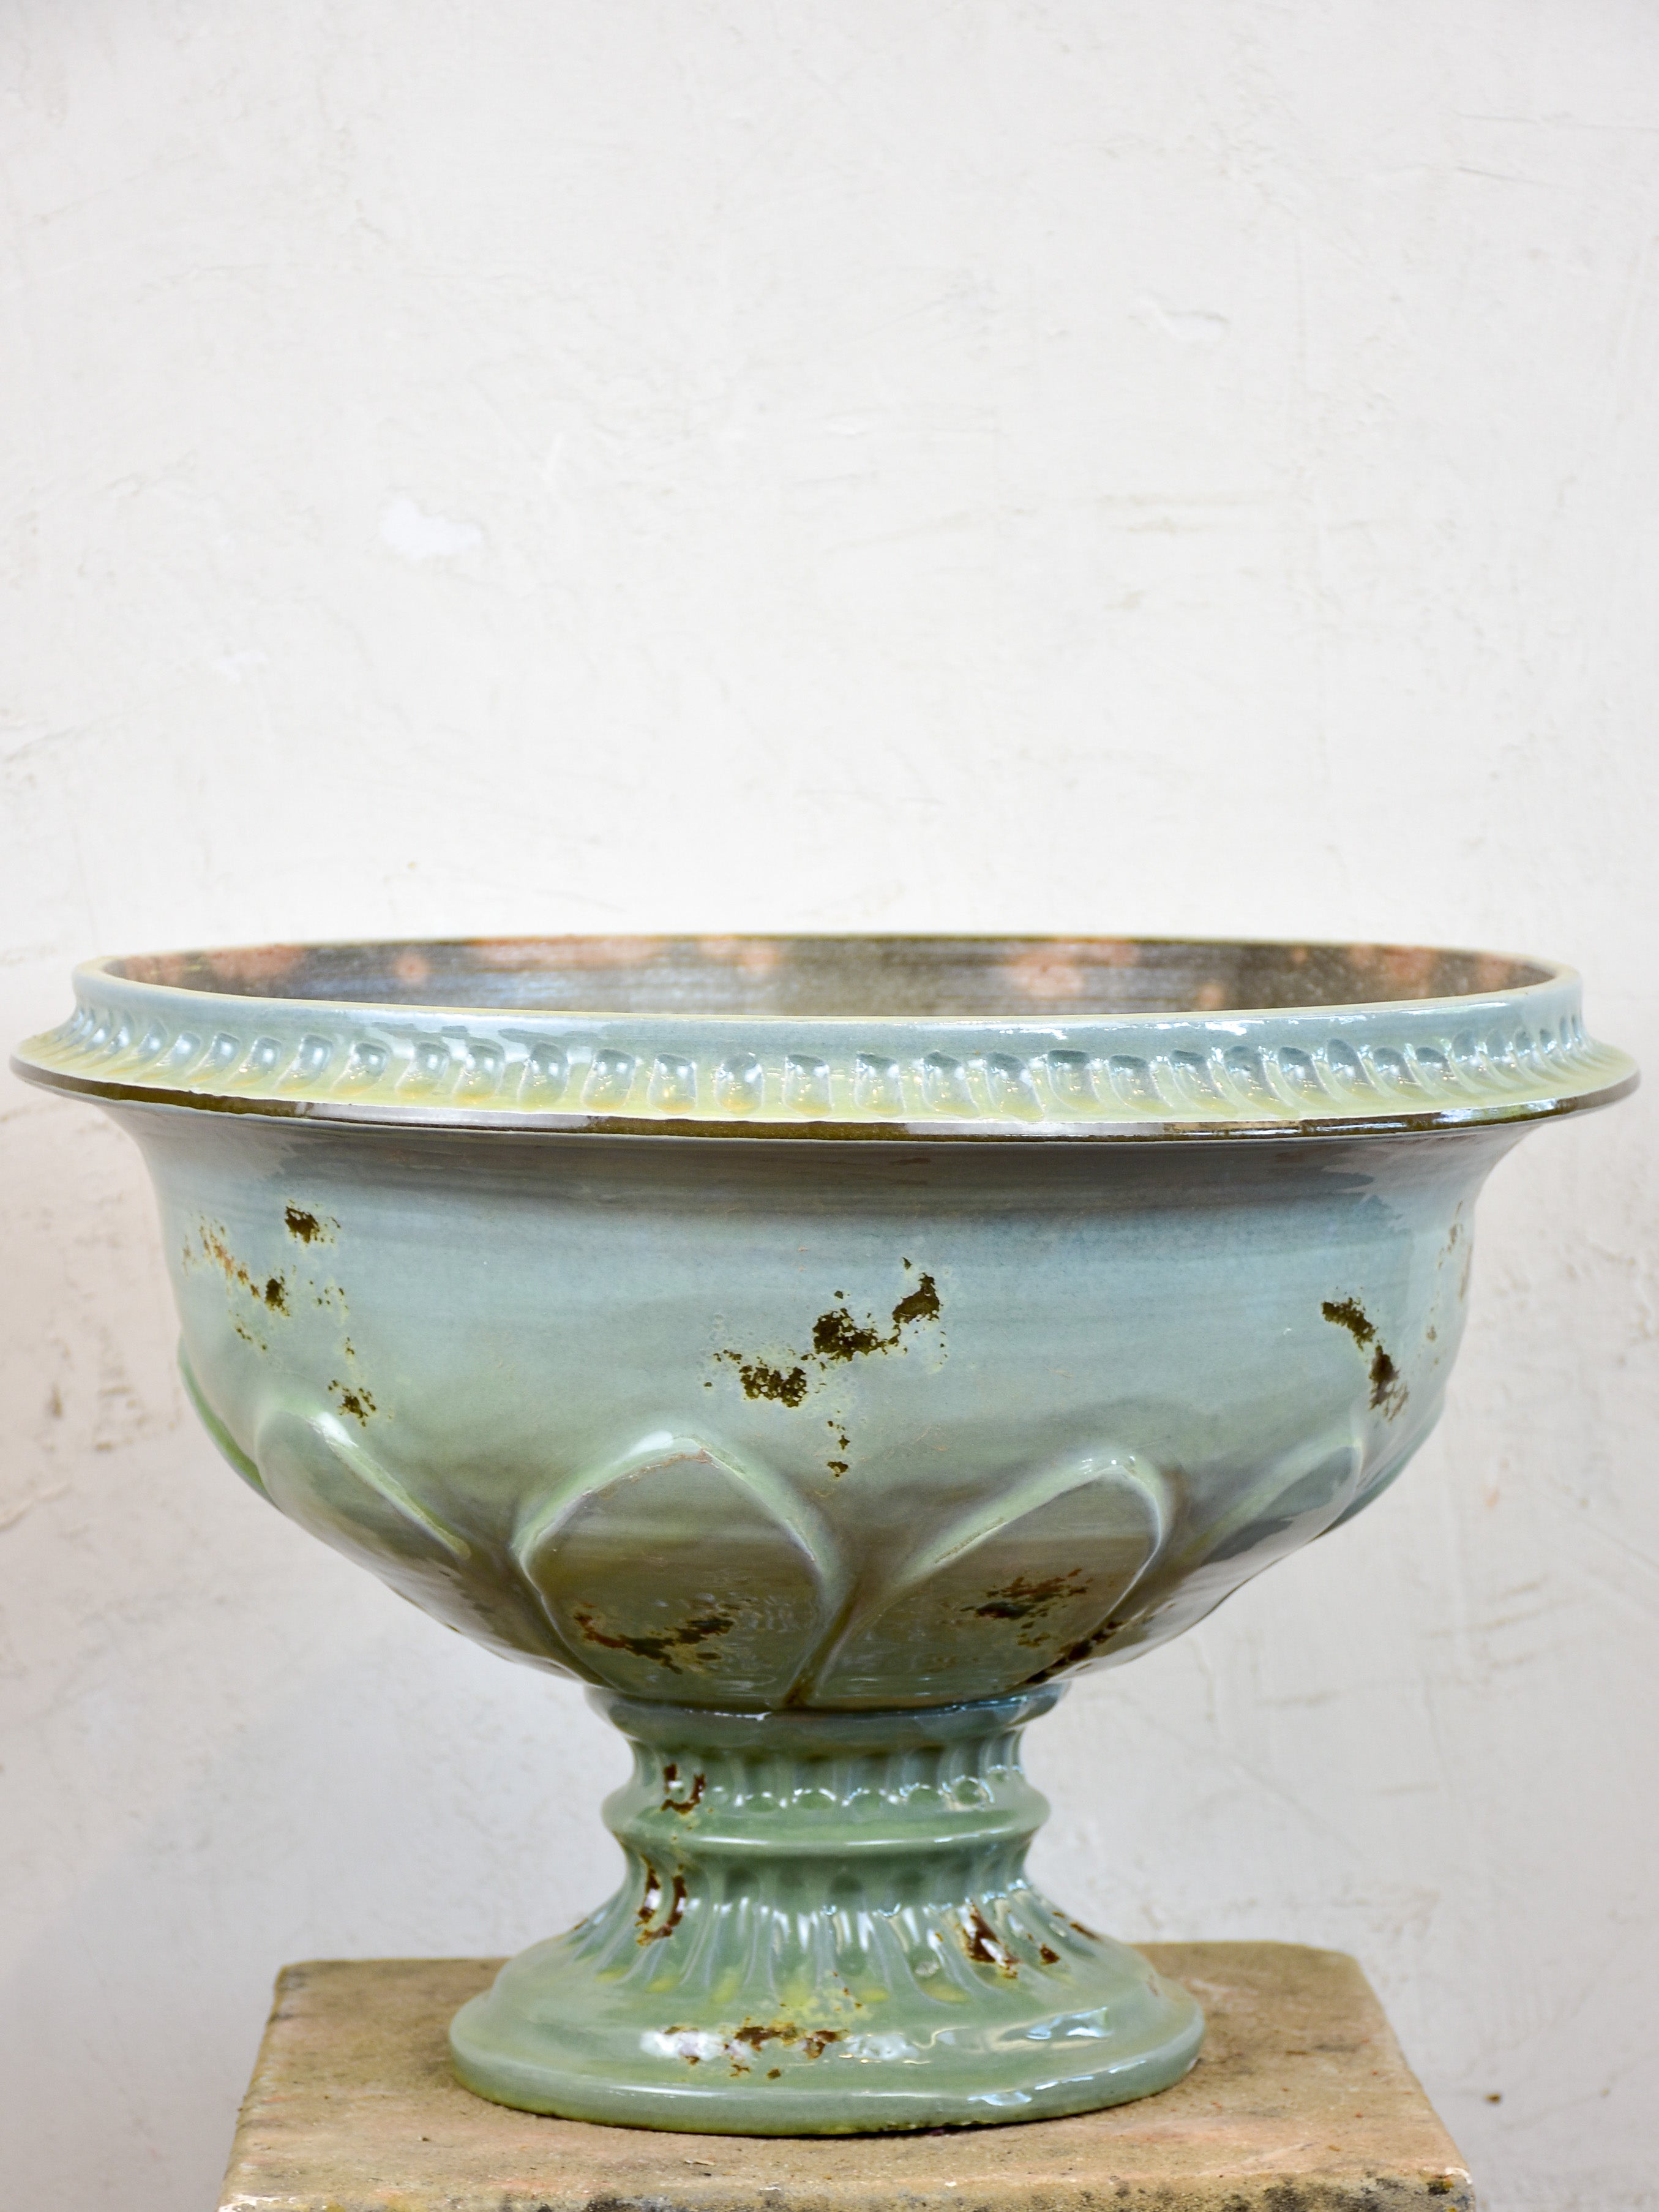 Handcrafted French terracotta medici urns